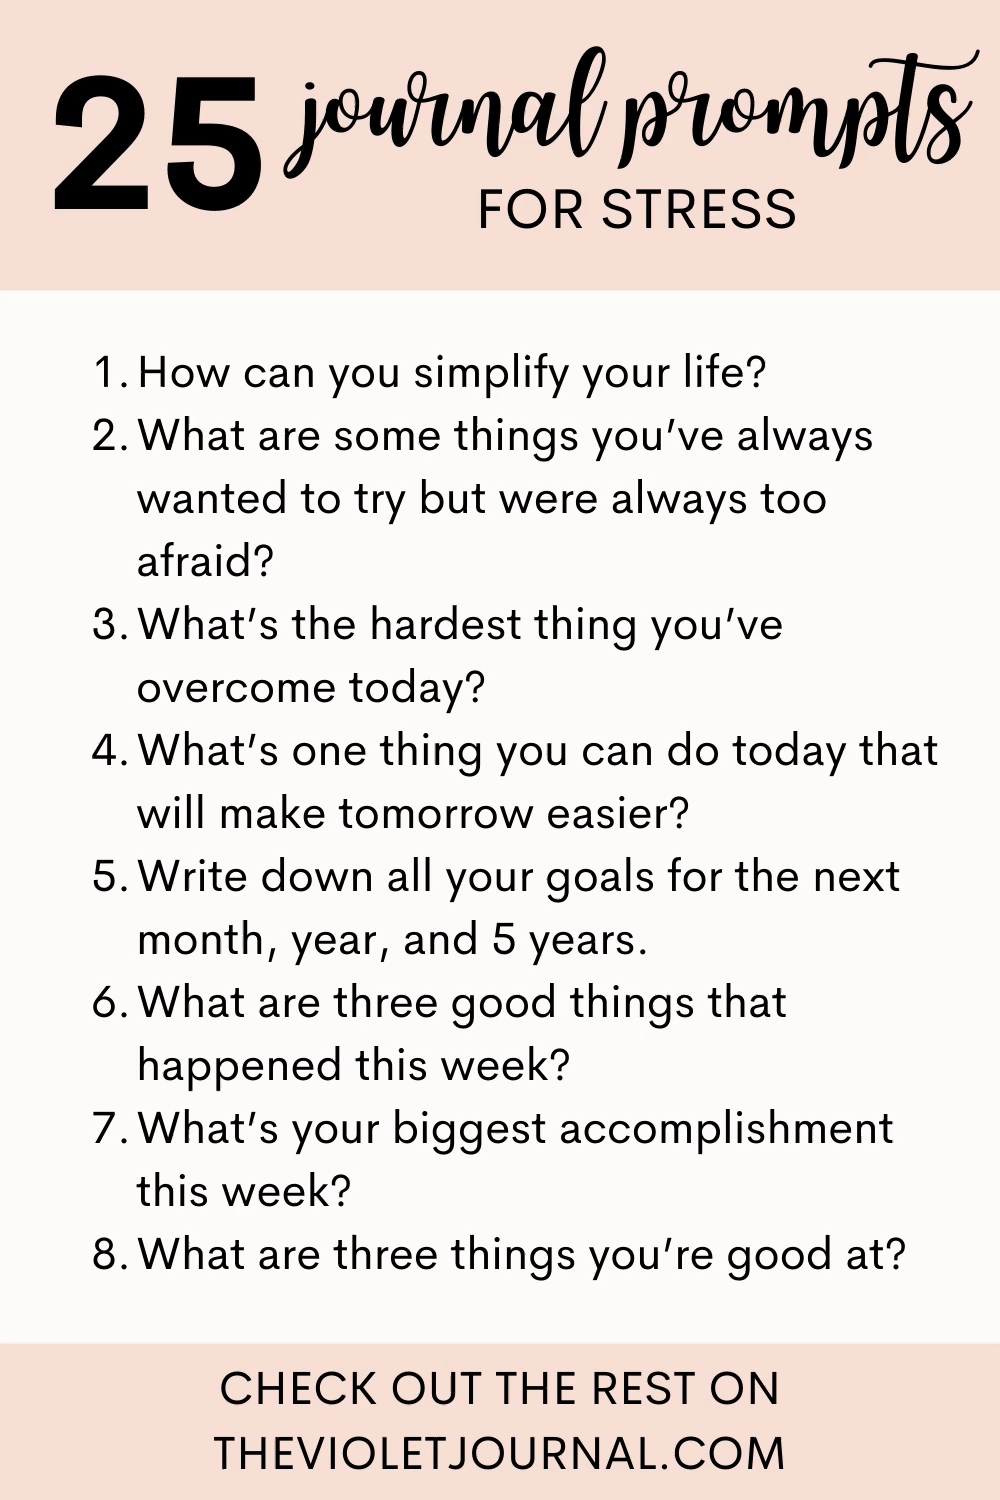 25 Journal Prompts for Stress